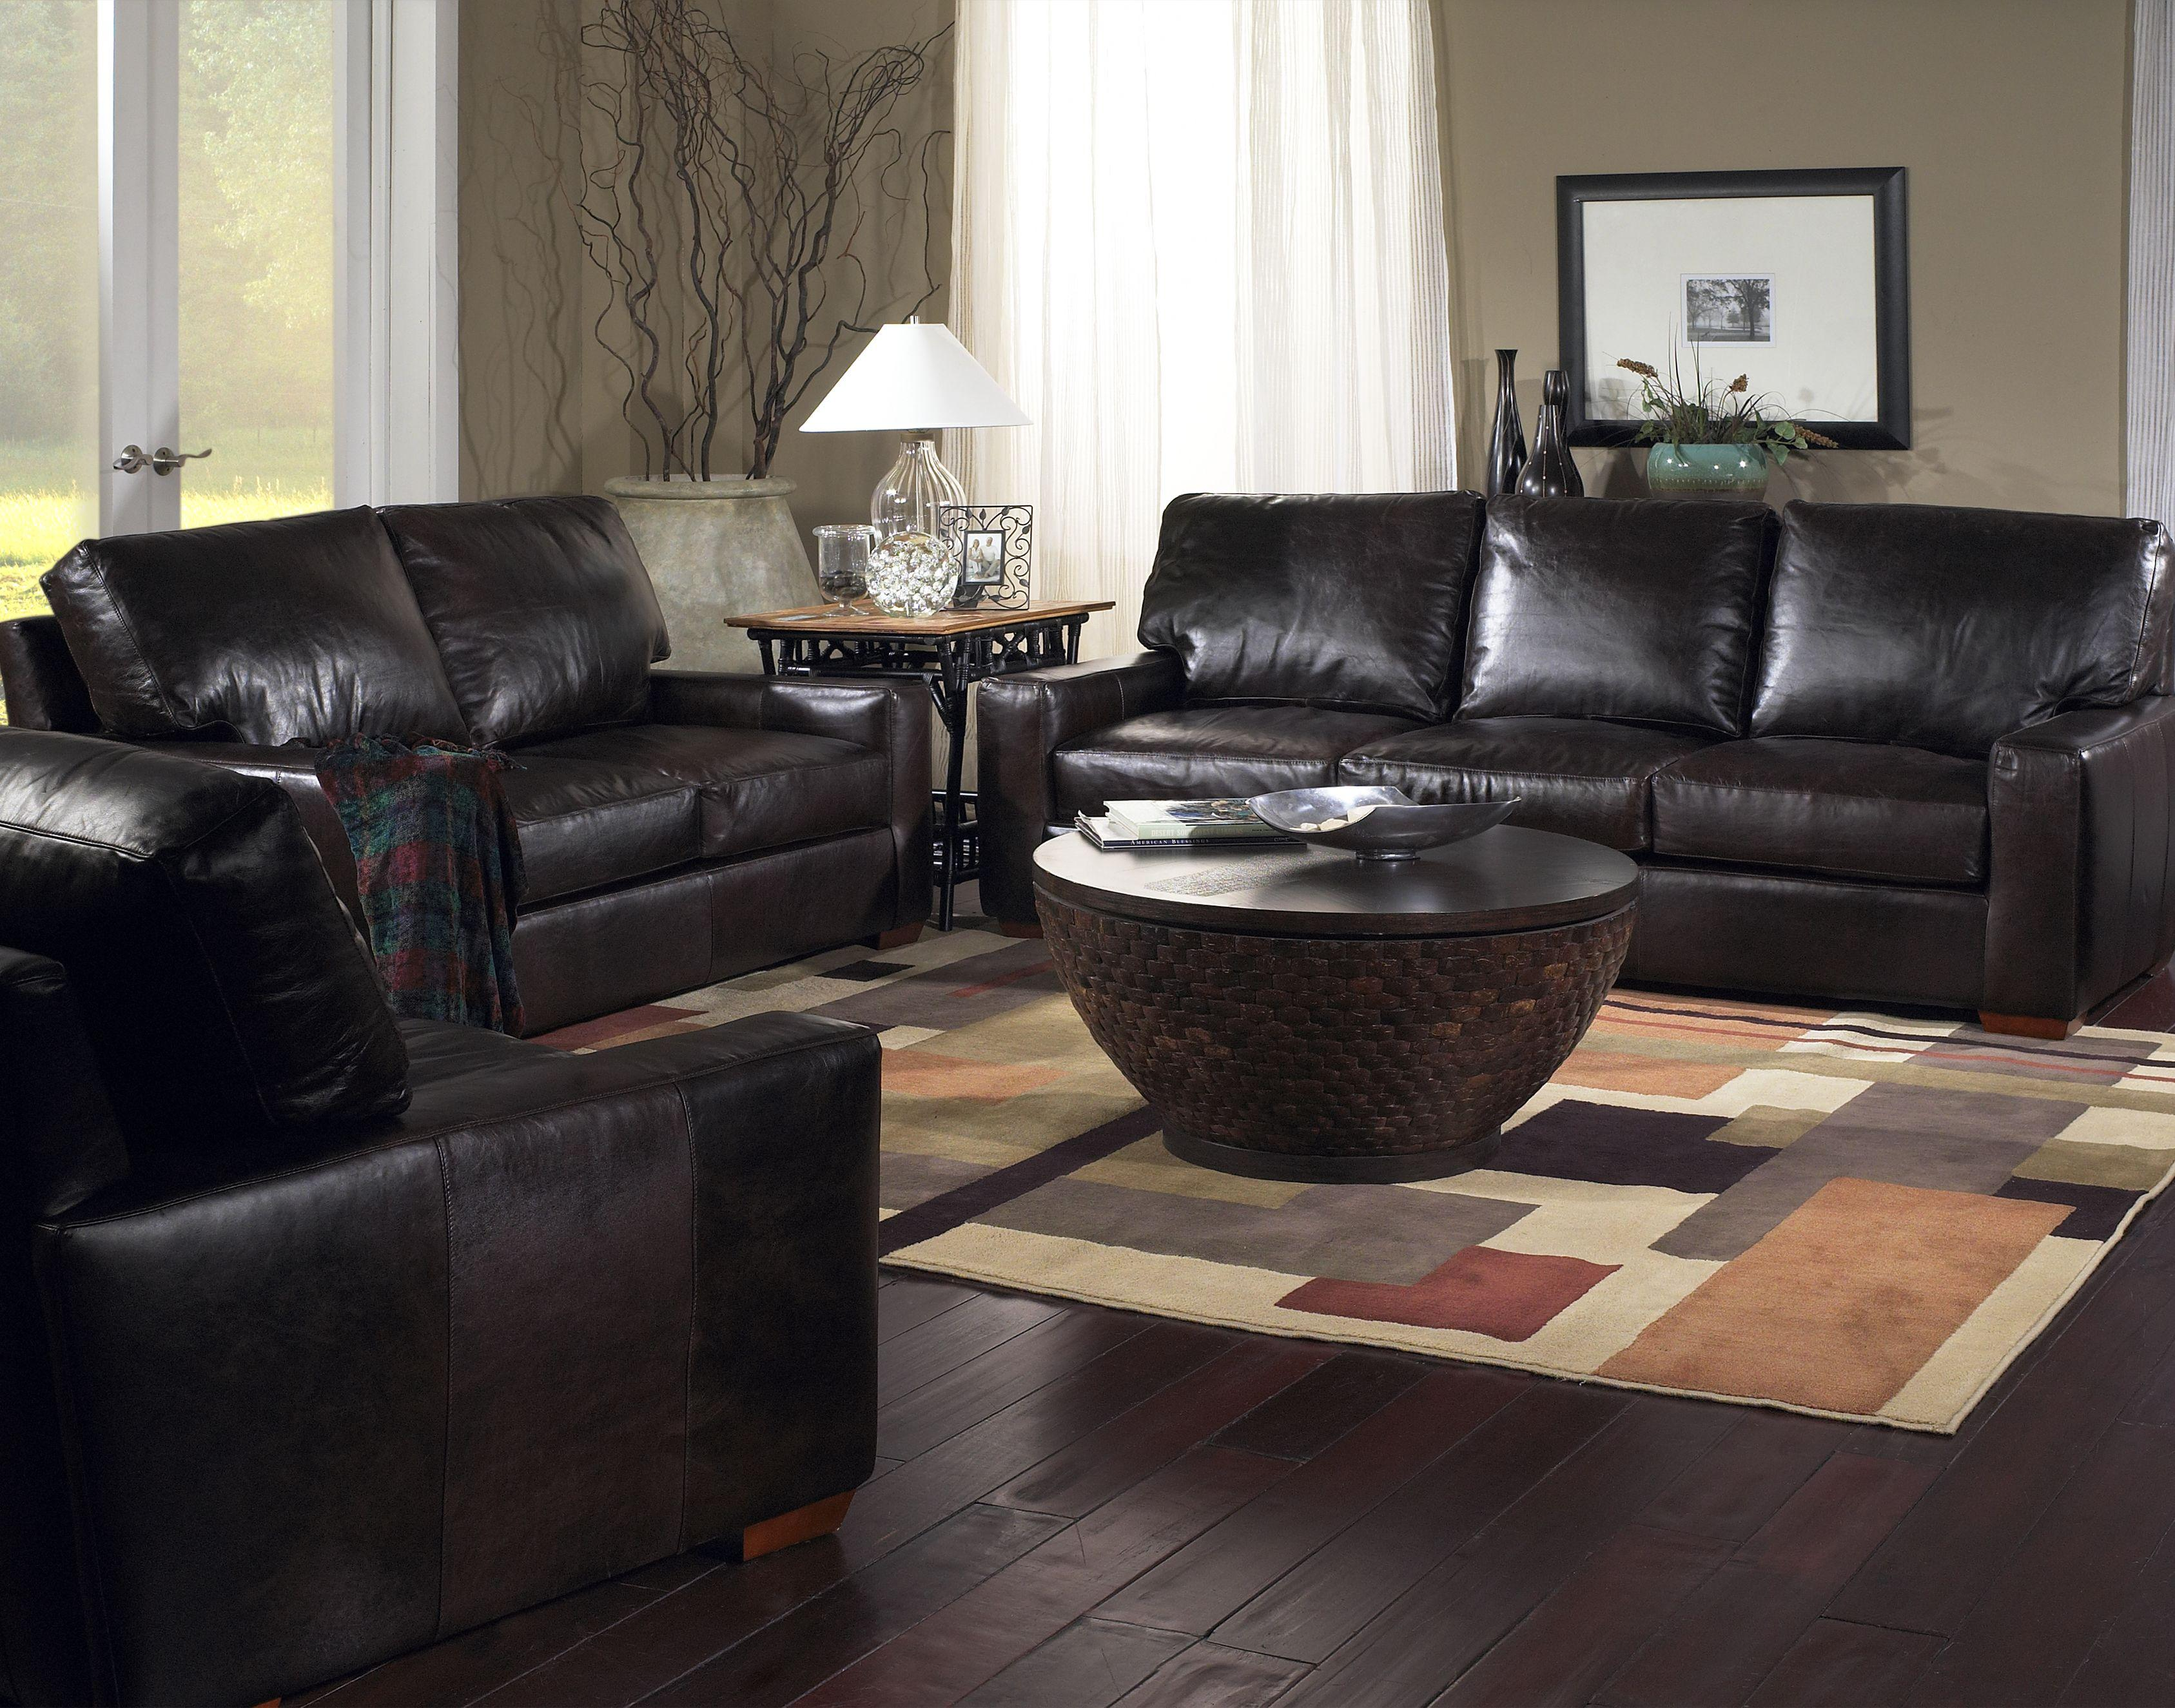 USA Premium Leather 2655 Stationary Living Room Group - Item Number: 2655 Living Room Group 1